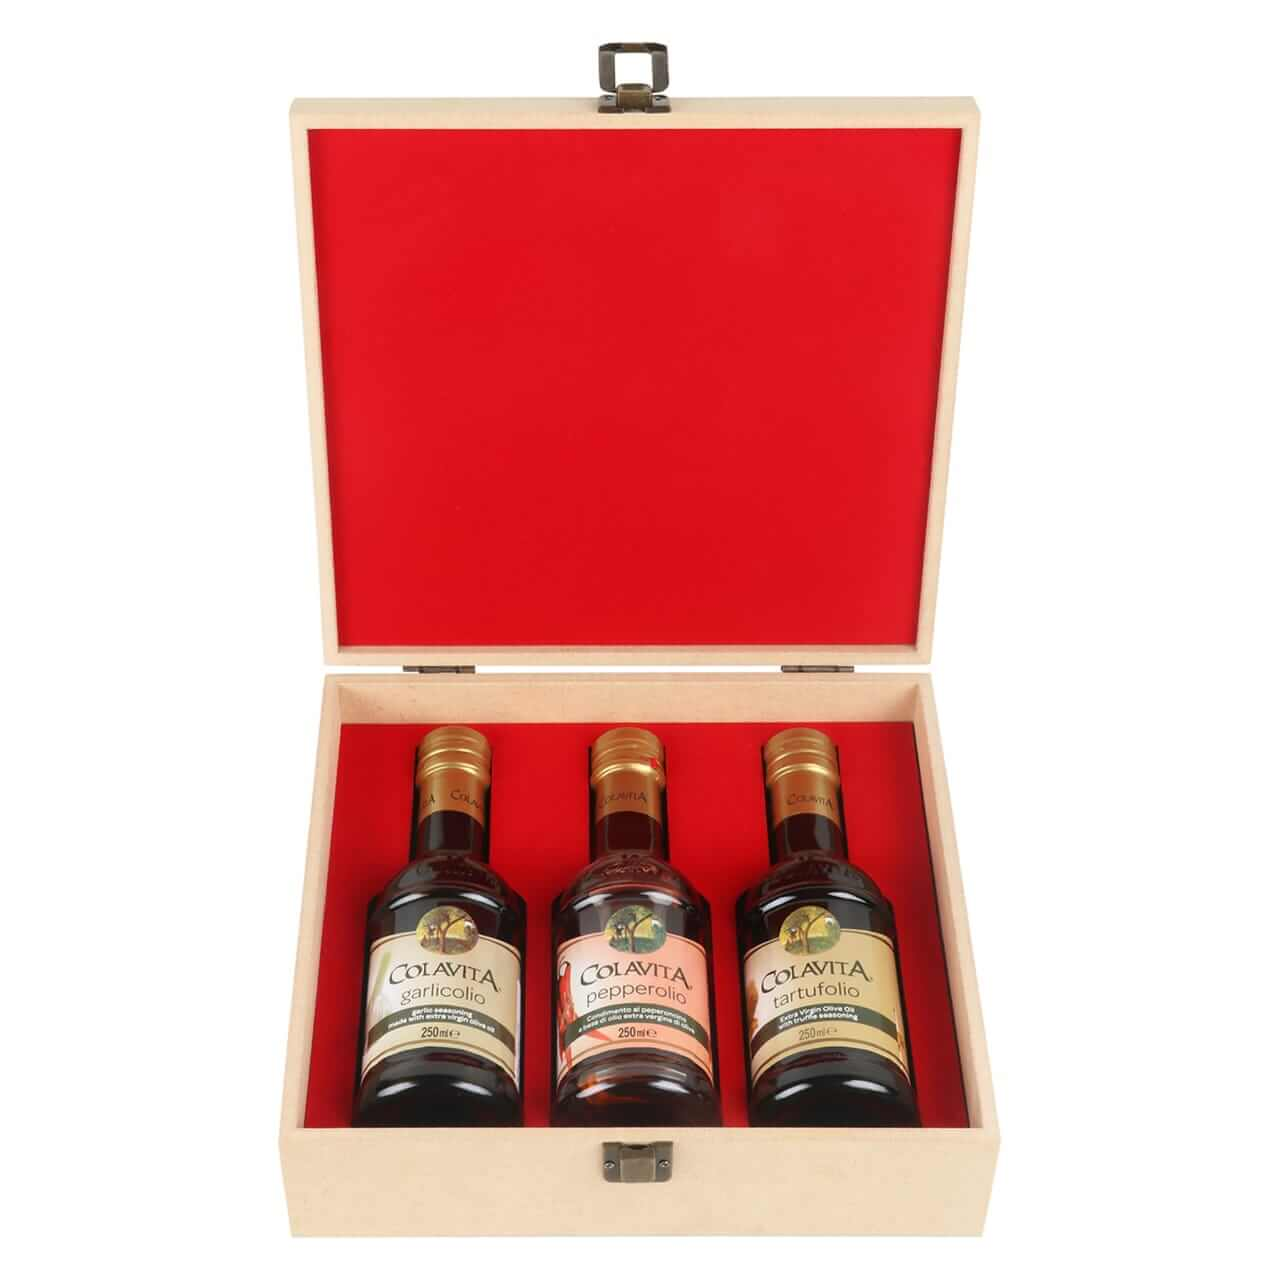 Colavita Flavoured Extra Virgin Olive Oil - Truffle, Garlic And Pepper In A Specially Crafted Reusable Wooden Box.